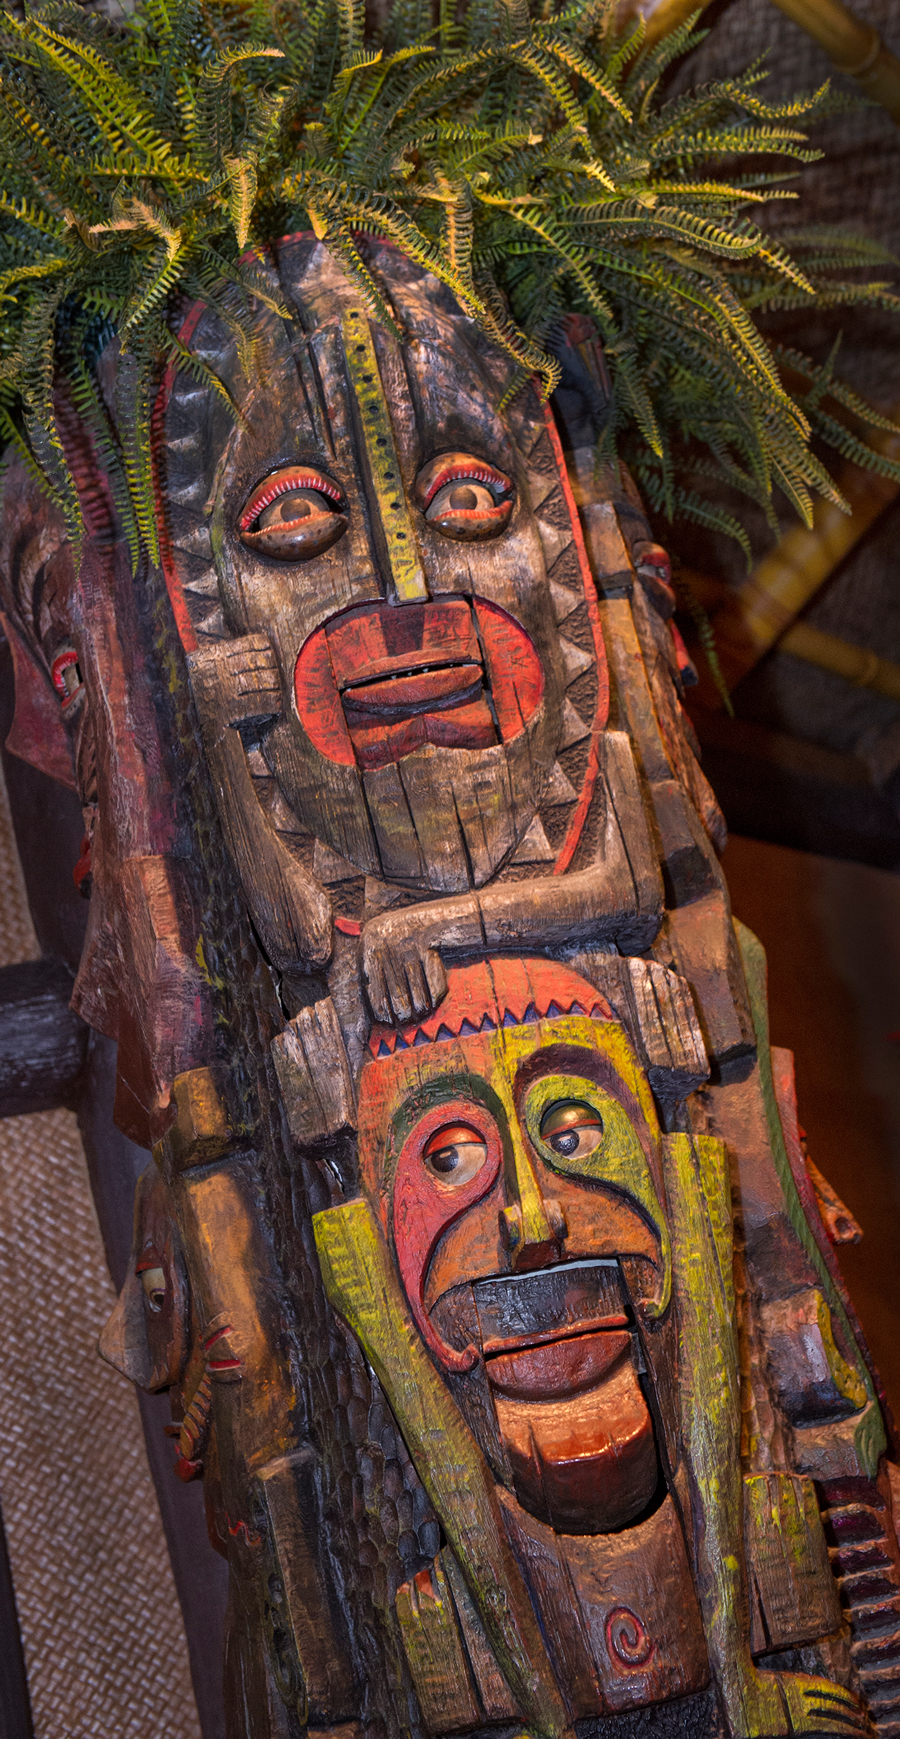 photo essay ing the enchanted tiki room at magic kingdom ing the enchanted tiki room at magic kingdom park at walt disney world resort